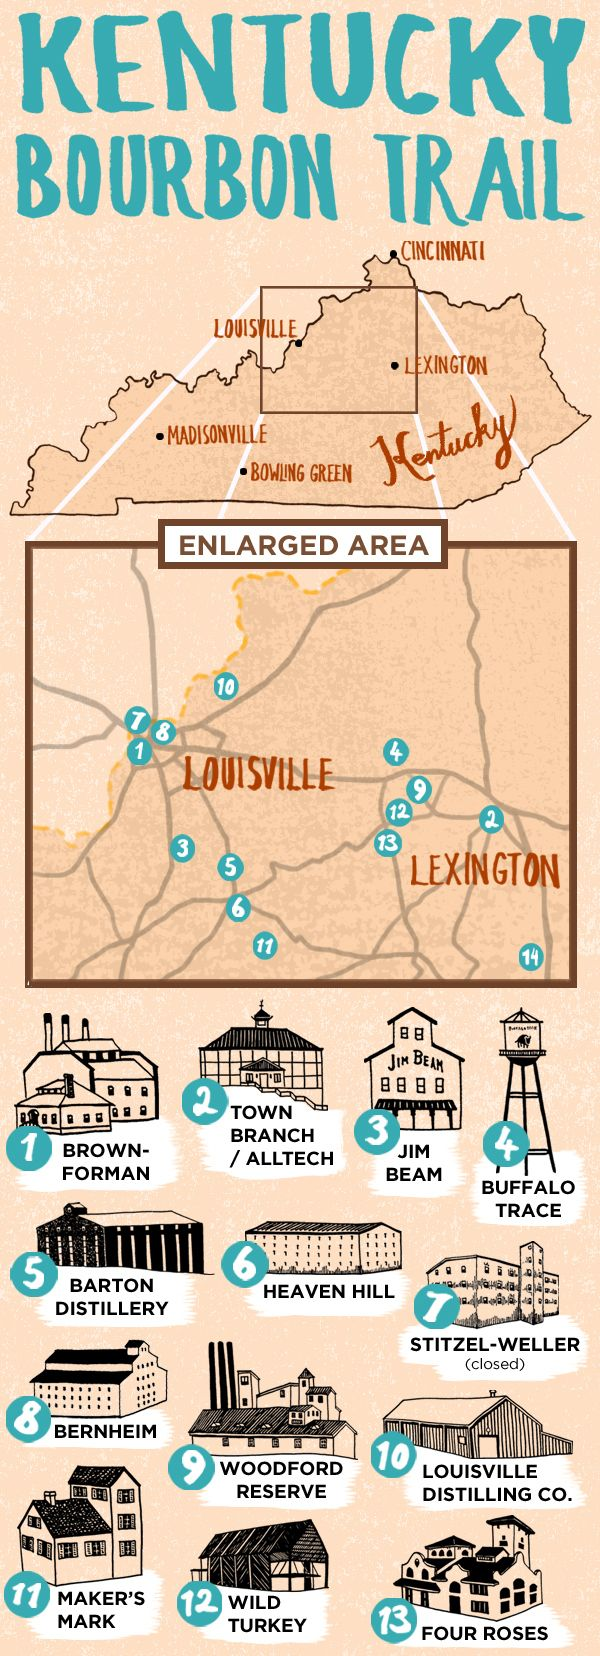 Map of Kentucky Bourbon Trail It's an interesting and fun trip exploring the history & making of bourbon.  A main claim to fame for KY!